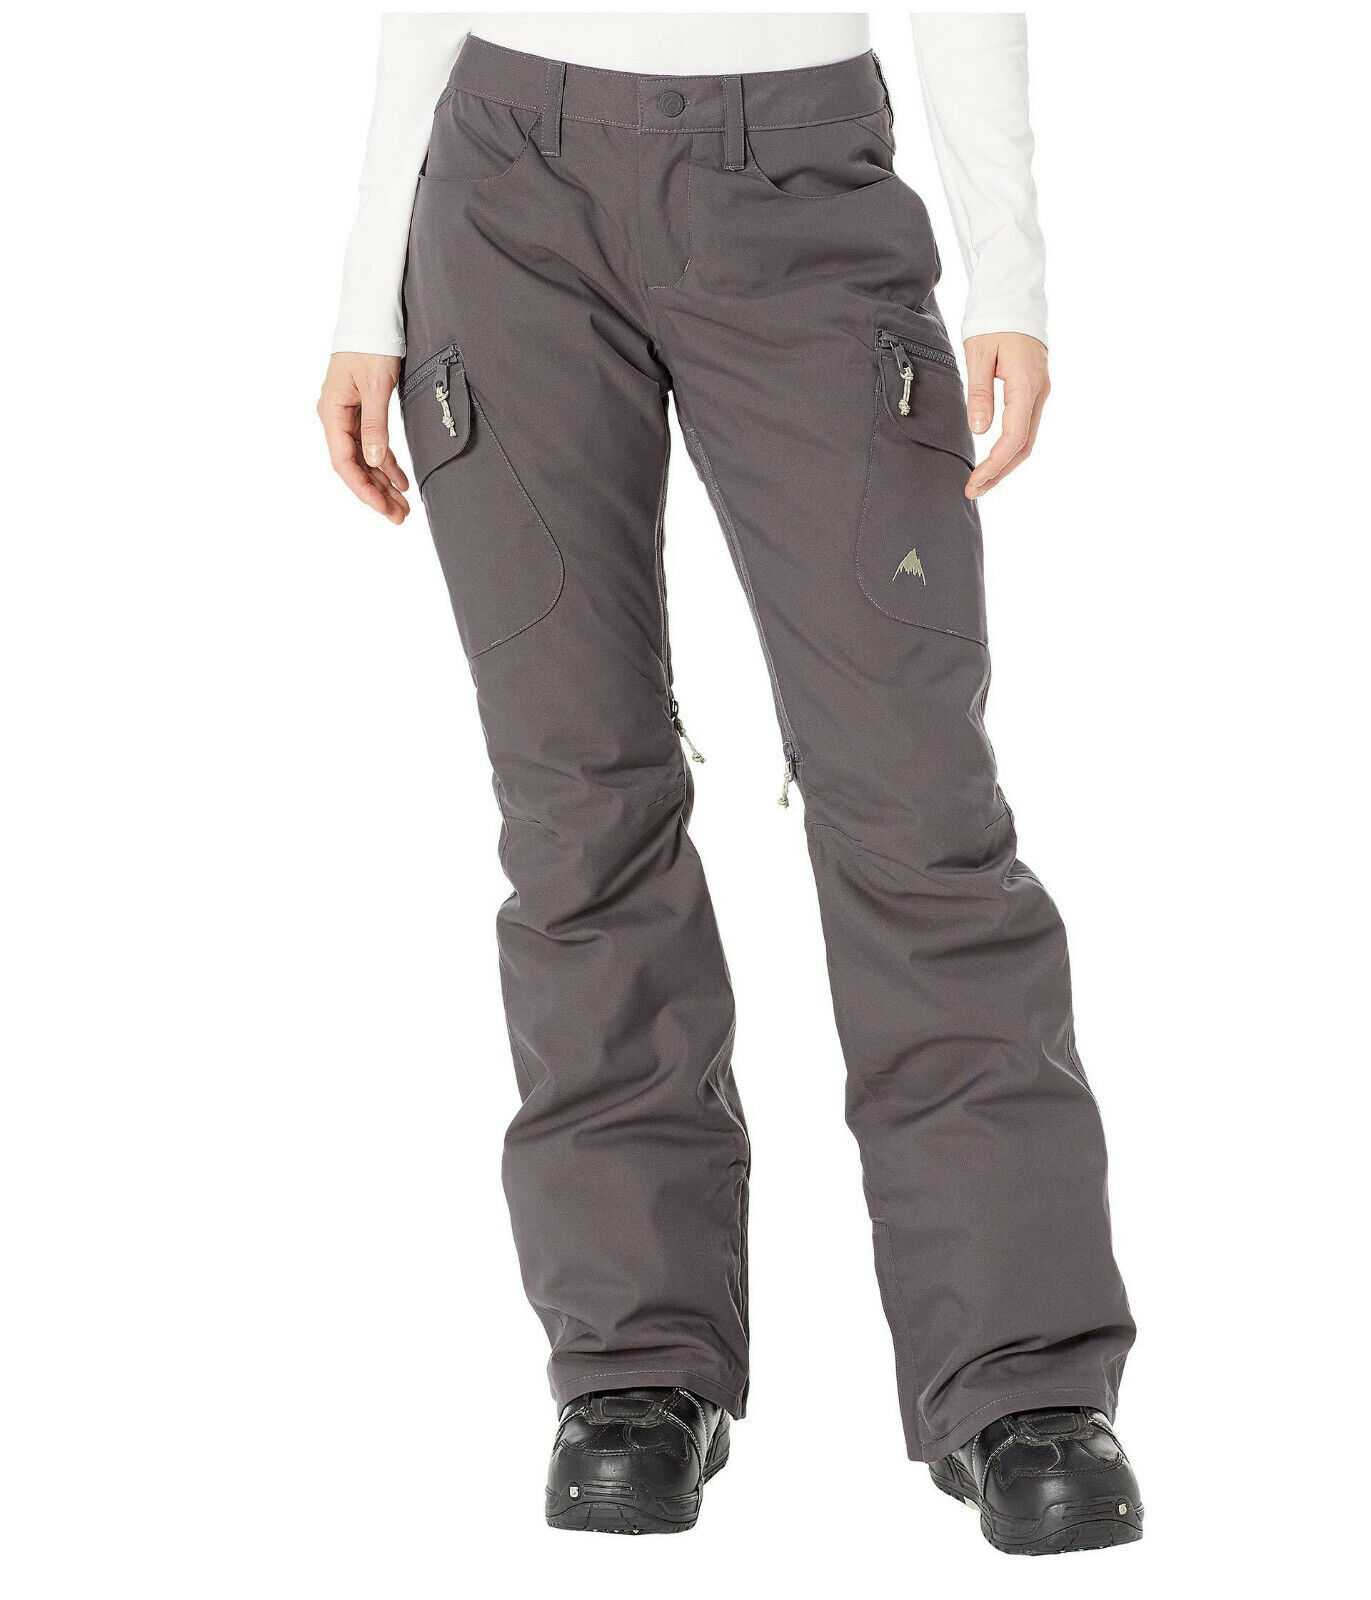 outlet sale off 63% Burton Womens Gray Thermolite Dryride Vented ...